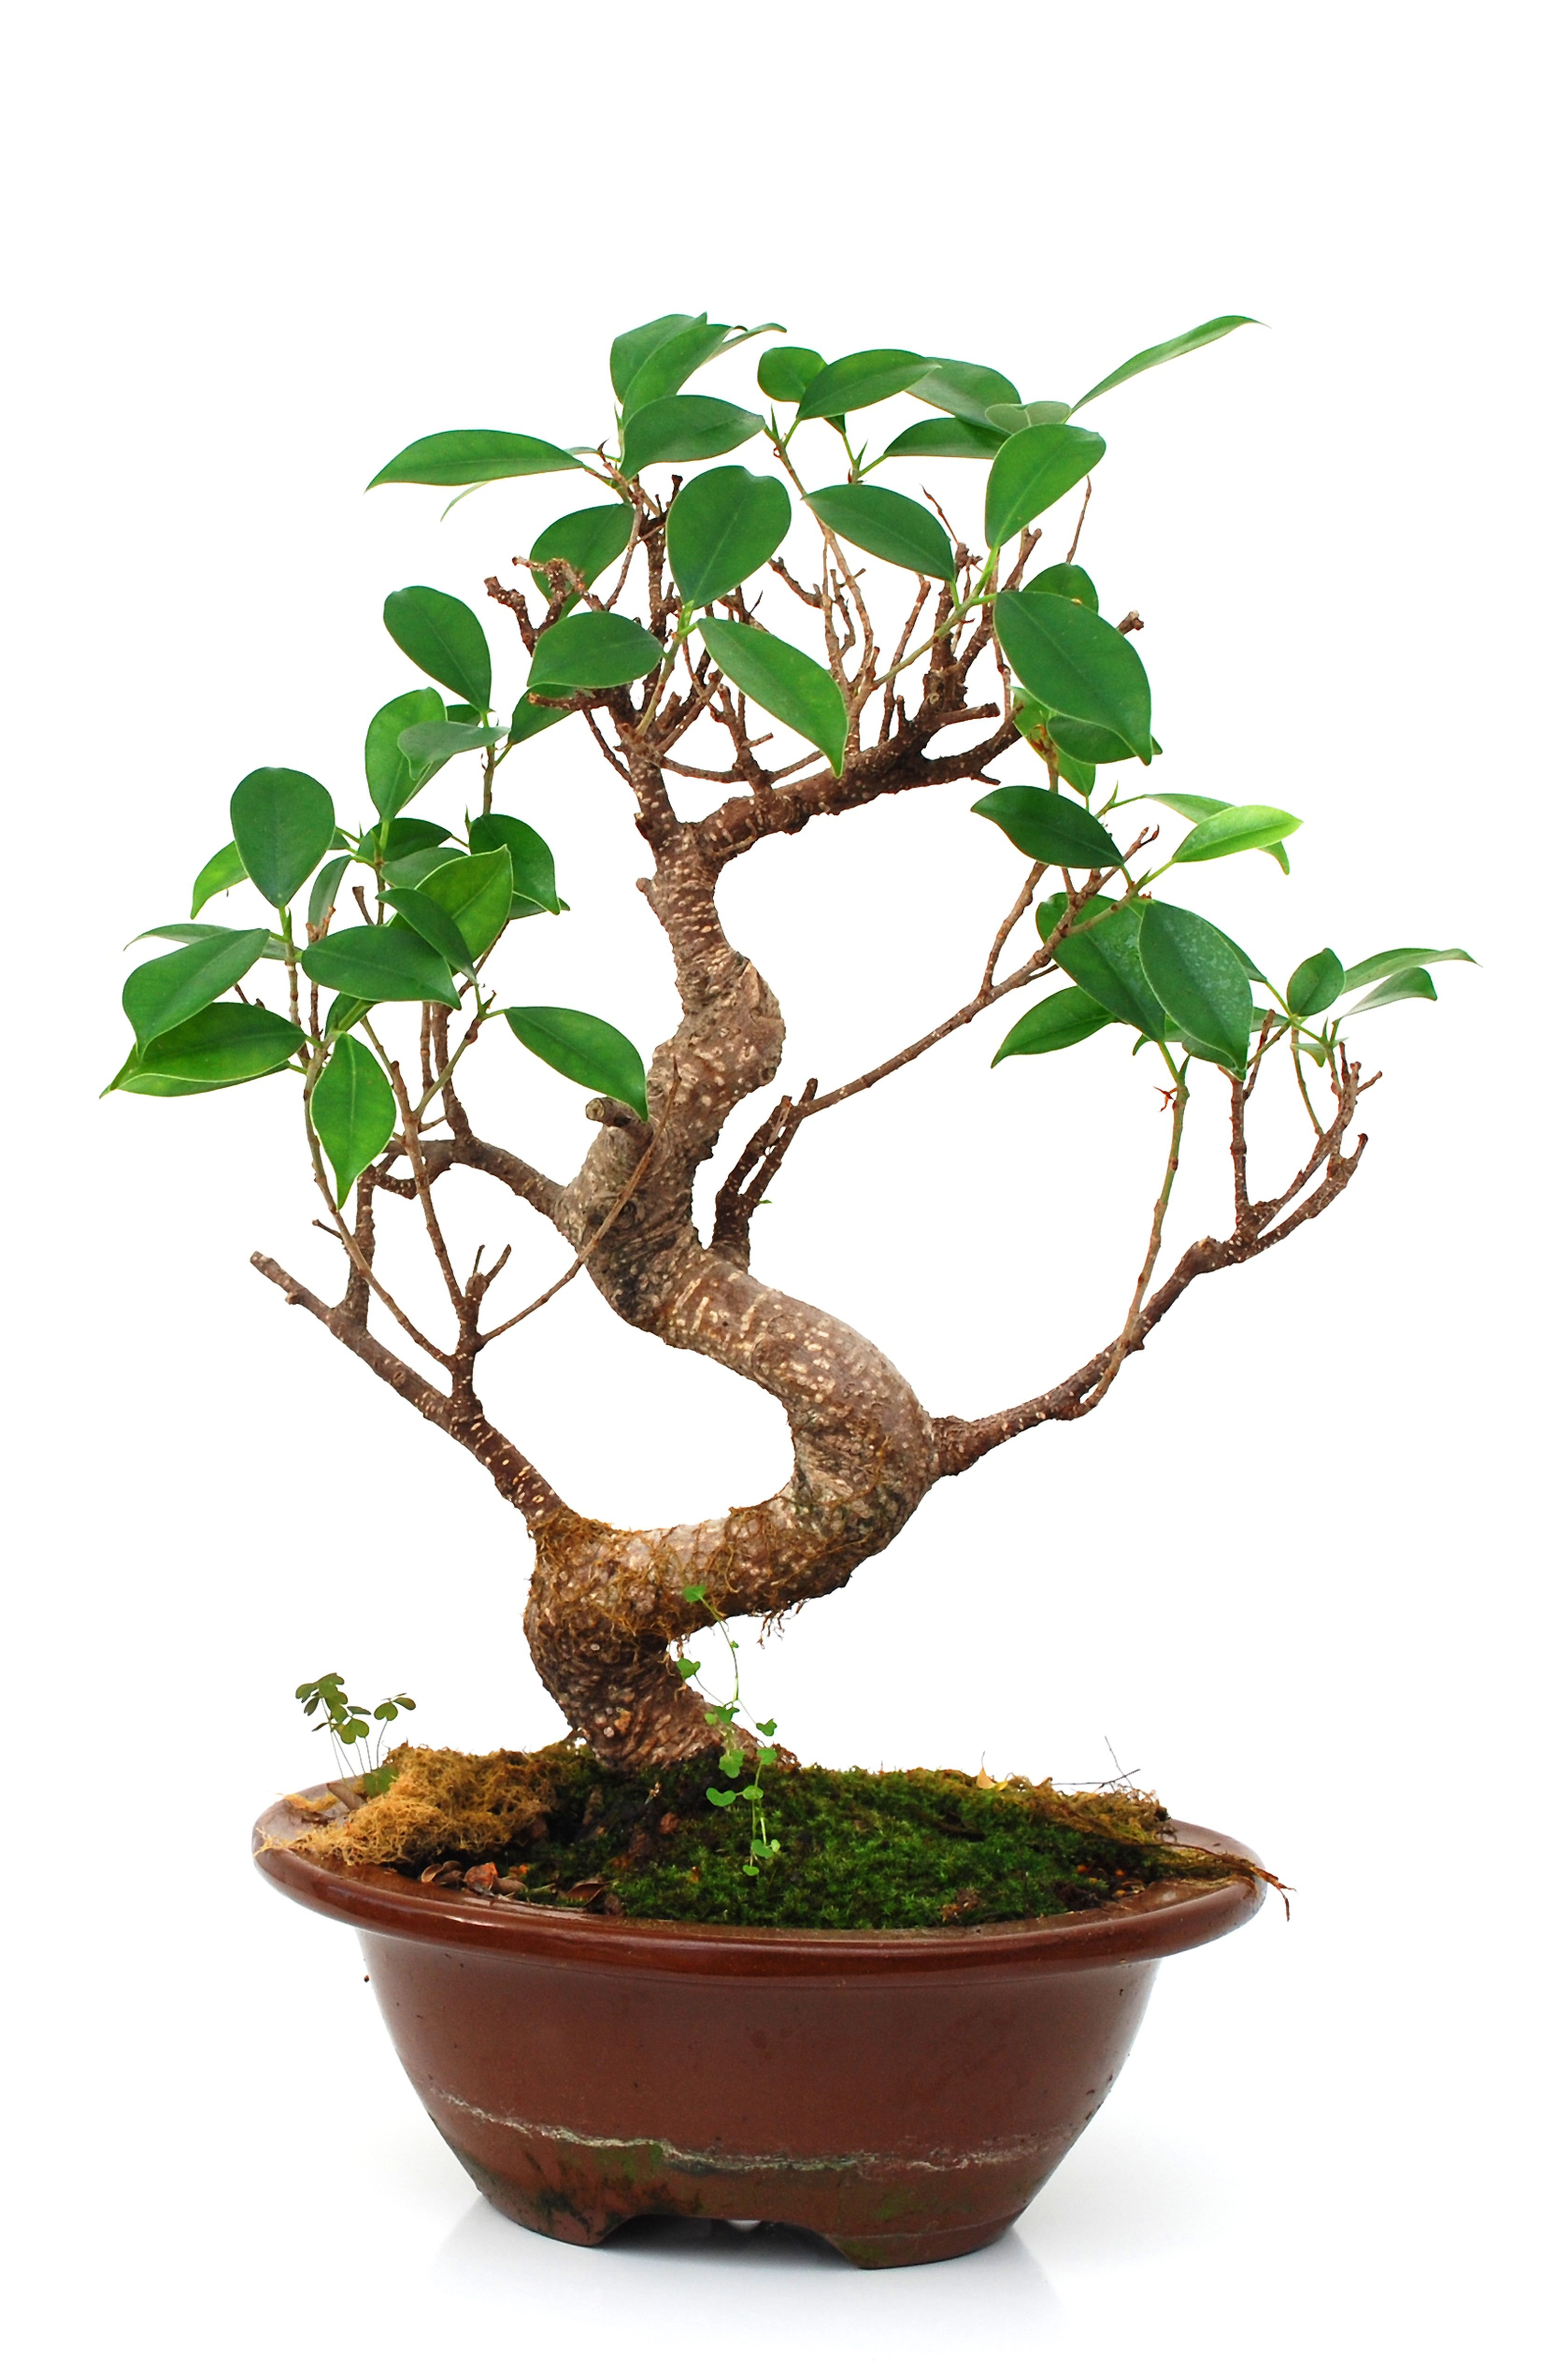 Caring For Your Golden Gate Ficus Bonsai Tree Your One Stop Guide Grow A Bonsai Tree How To Grow Bonsai Ficus Bonsai Tree Bonsai Ficus